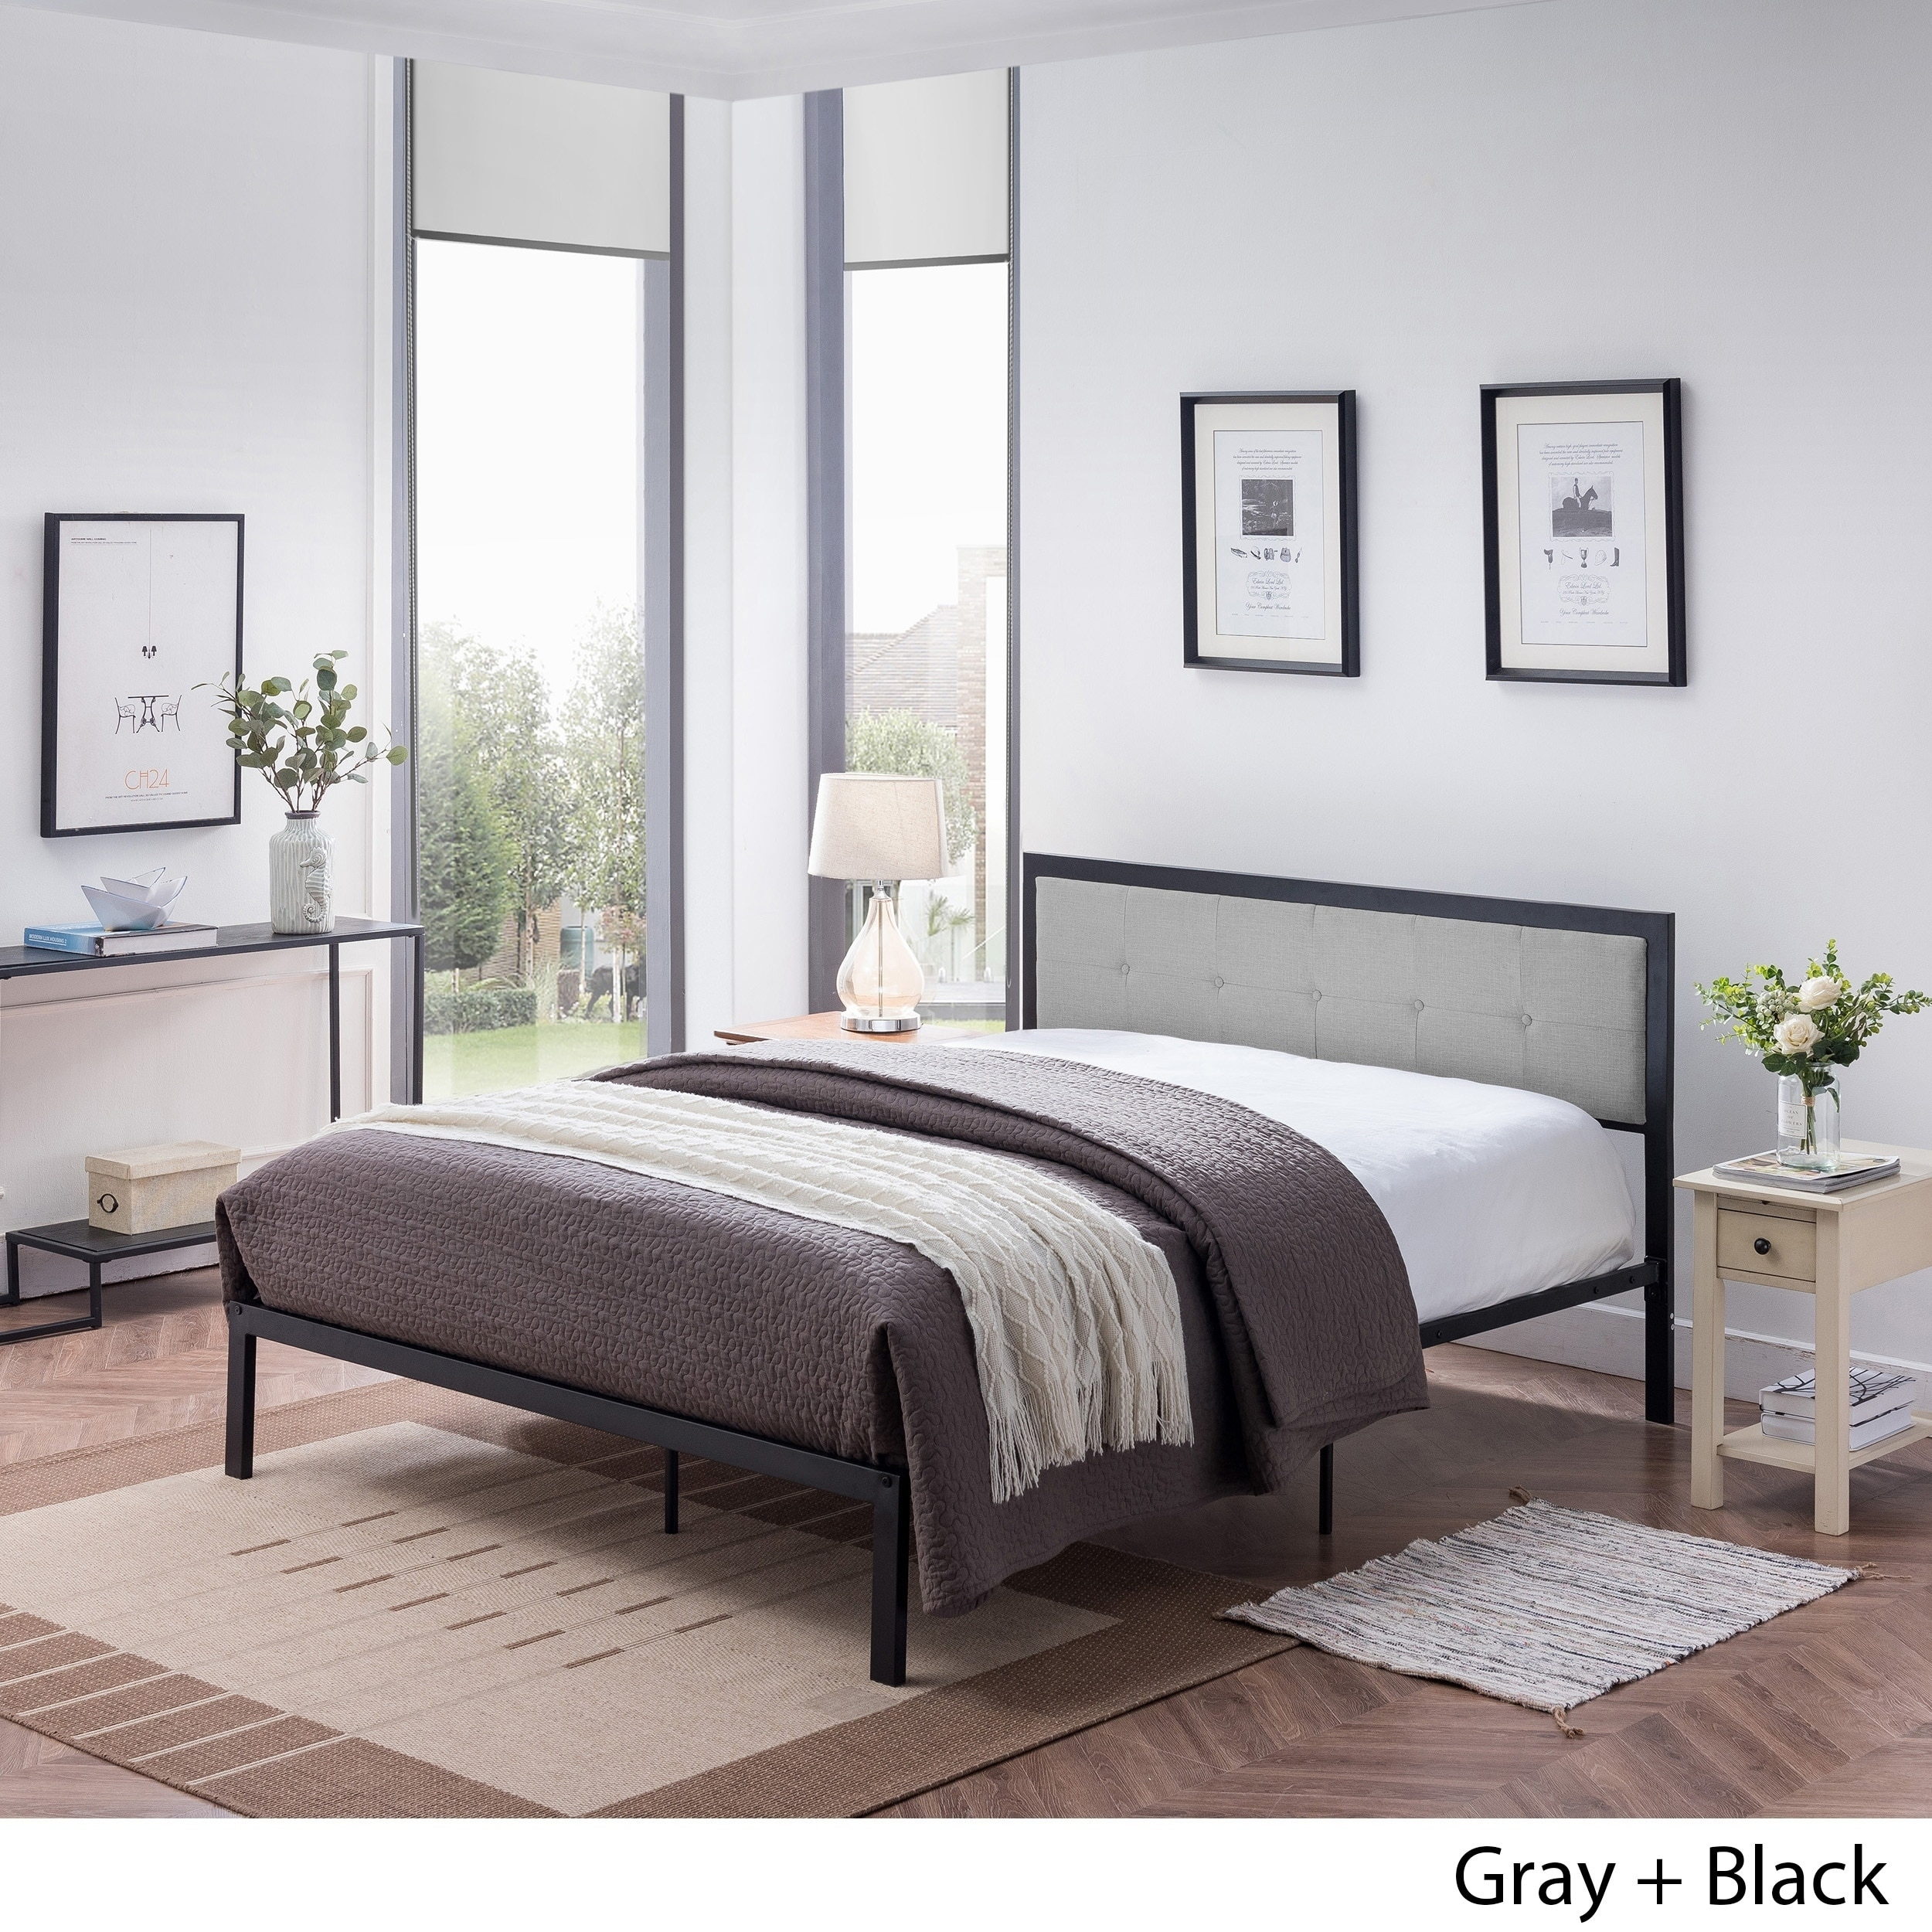 Haroun Contemporary Upholstered Headboard Queen Size Bed Frame By Christopher Knight Home Overstock 24115157